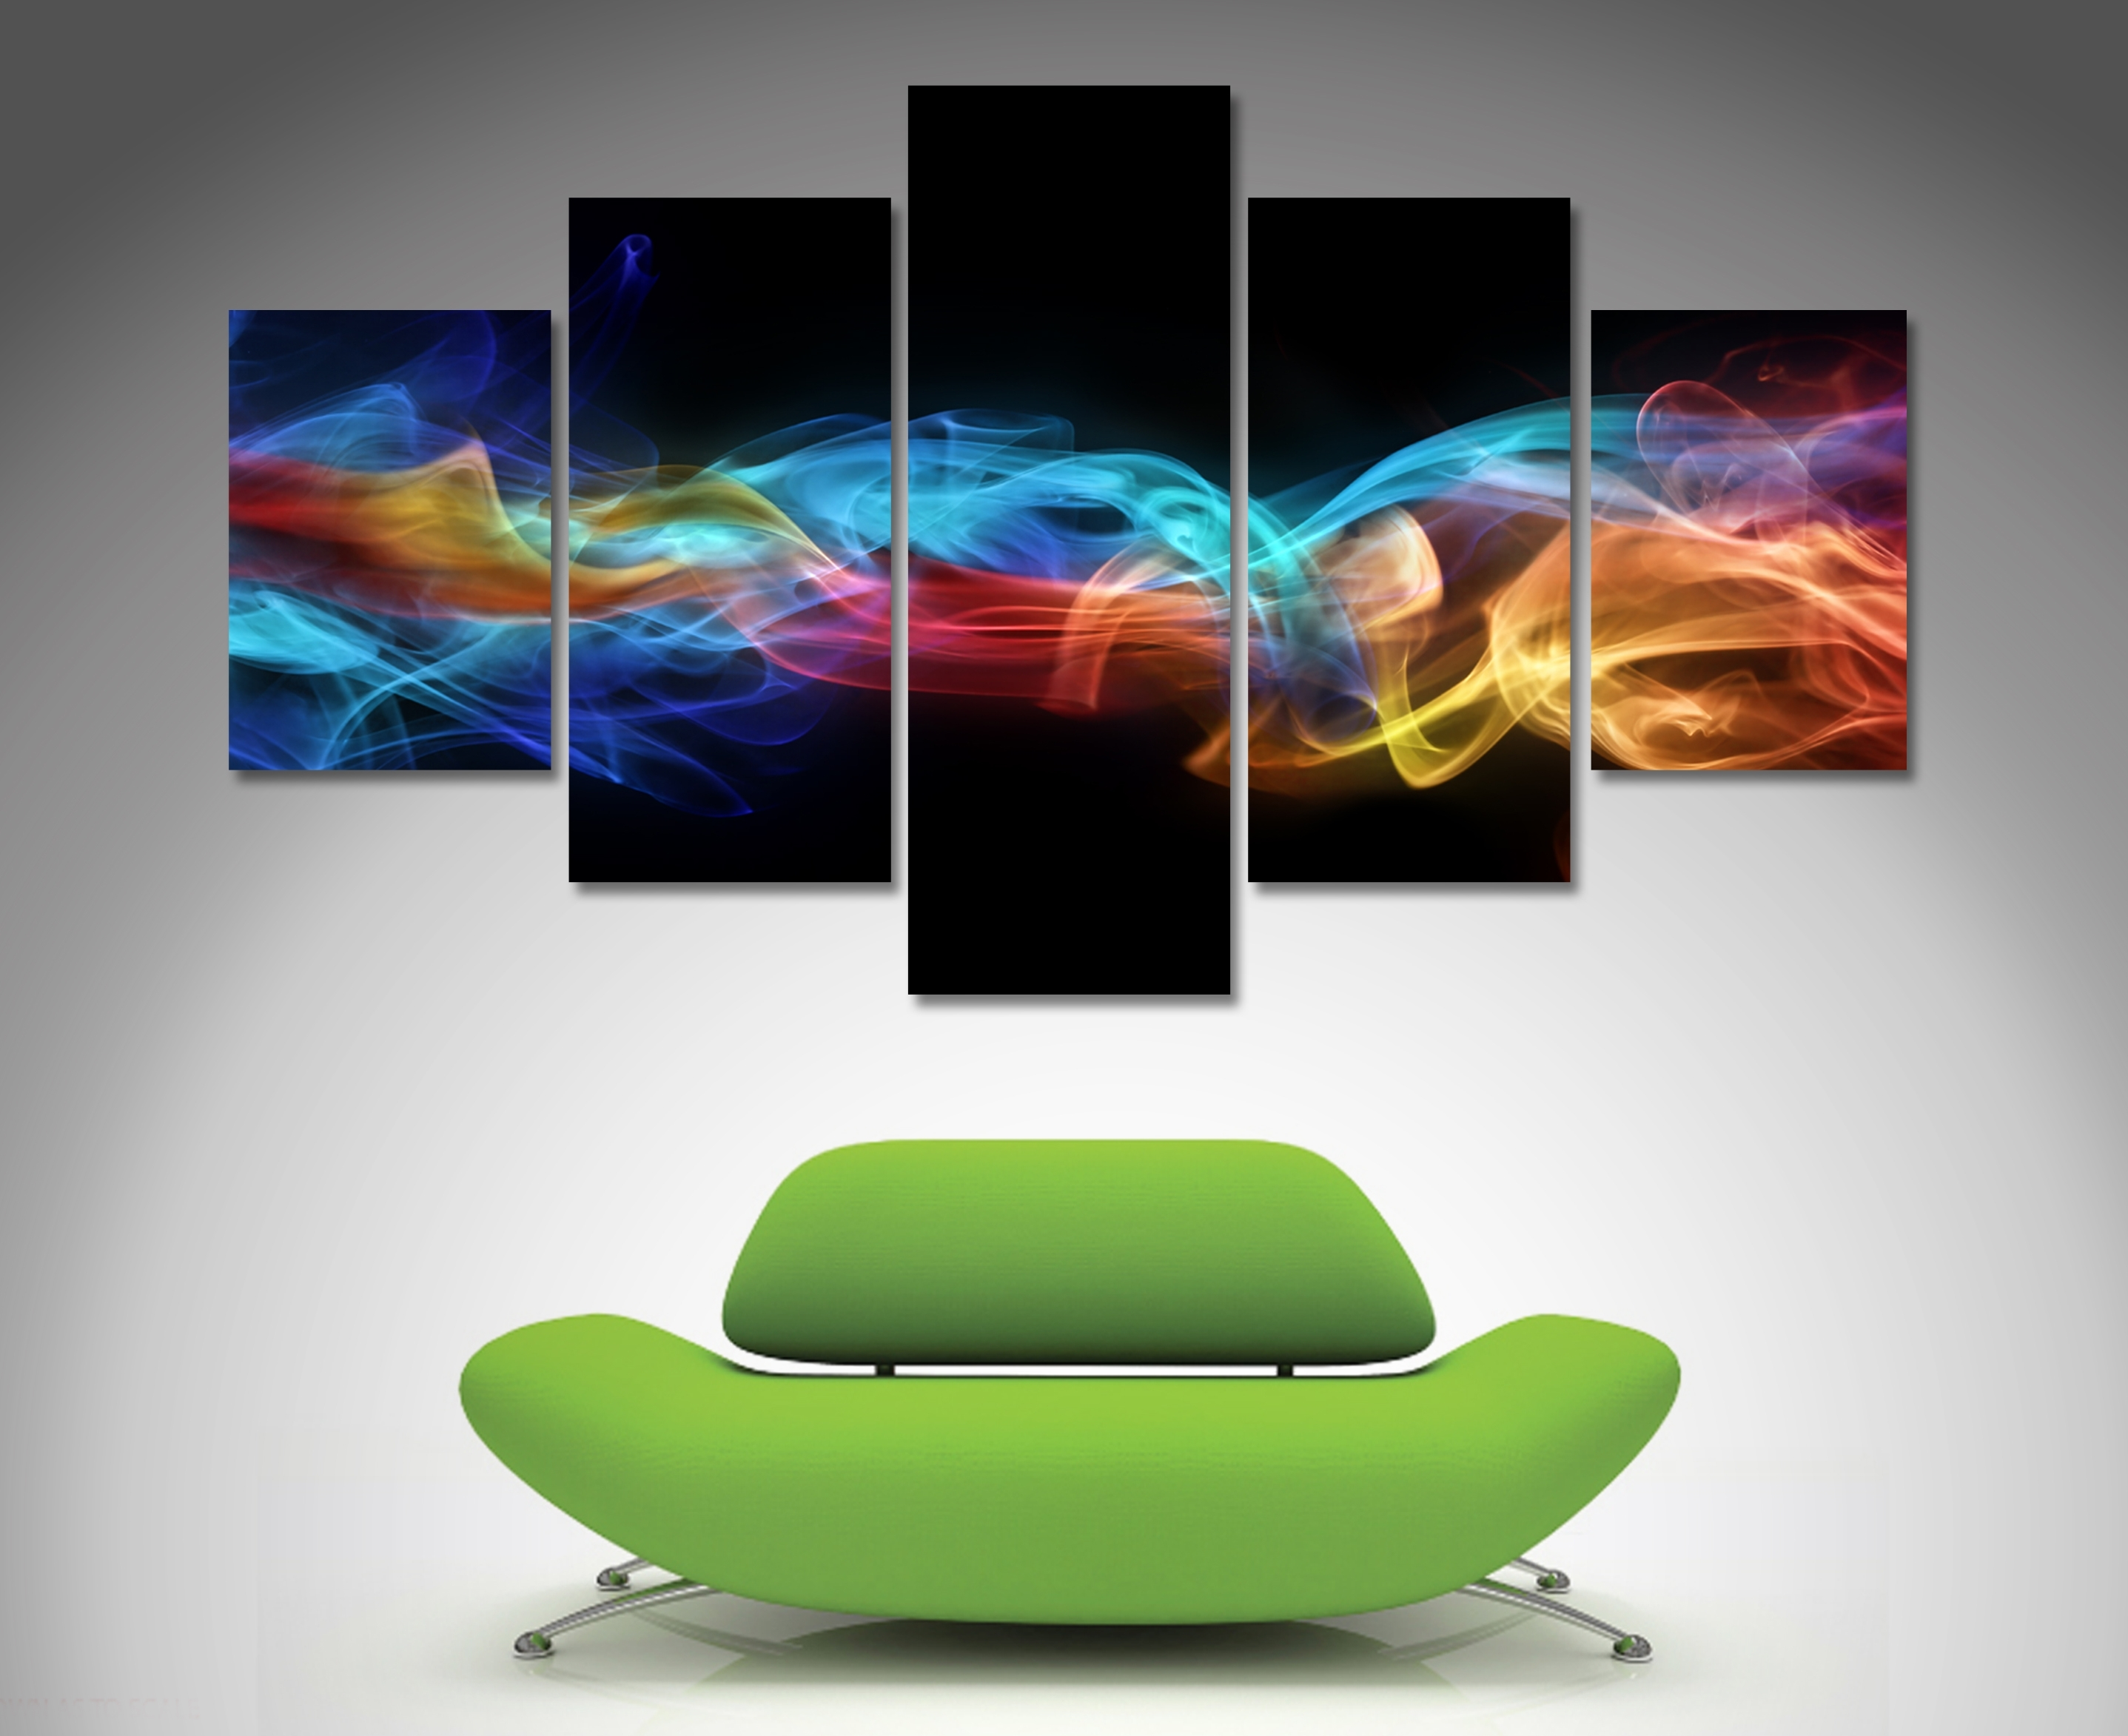 Fire And Ice 5 Panel Wall Art | Canvas Printing Australia Pertaining To Current Wall Art Prints (View 14 of 20)